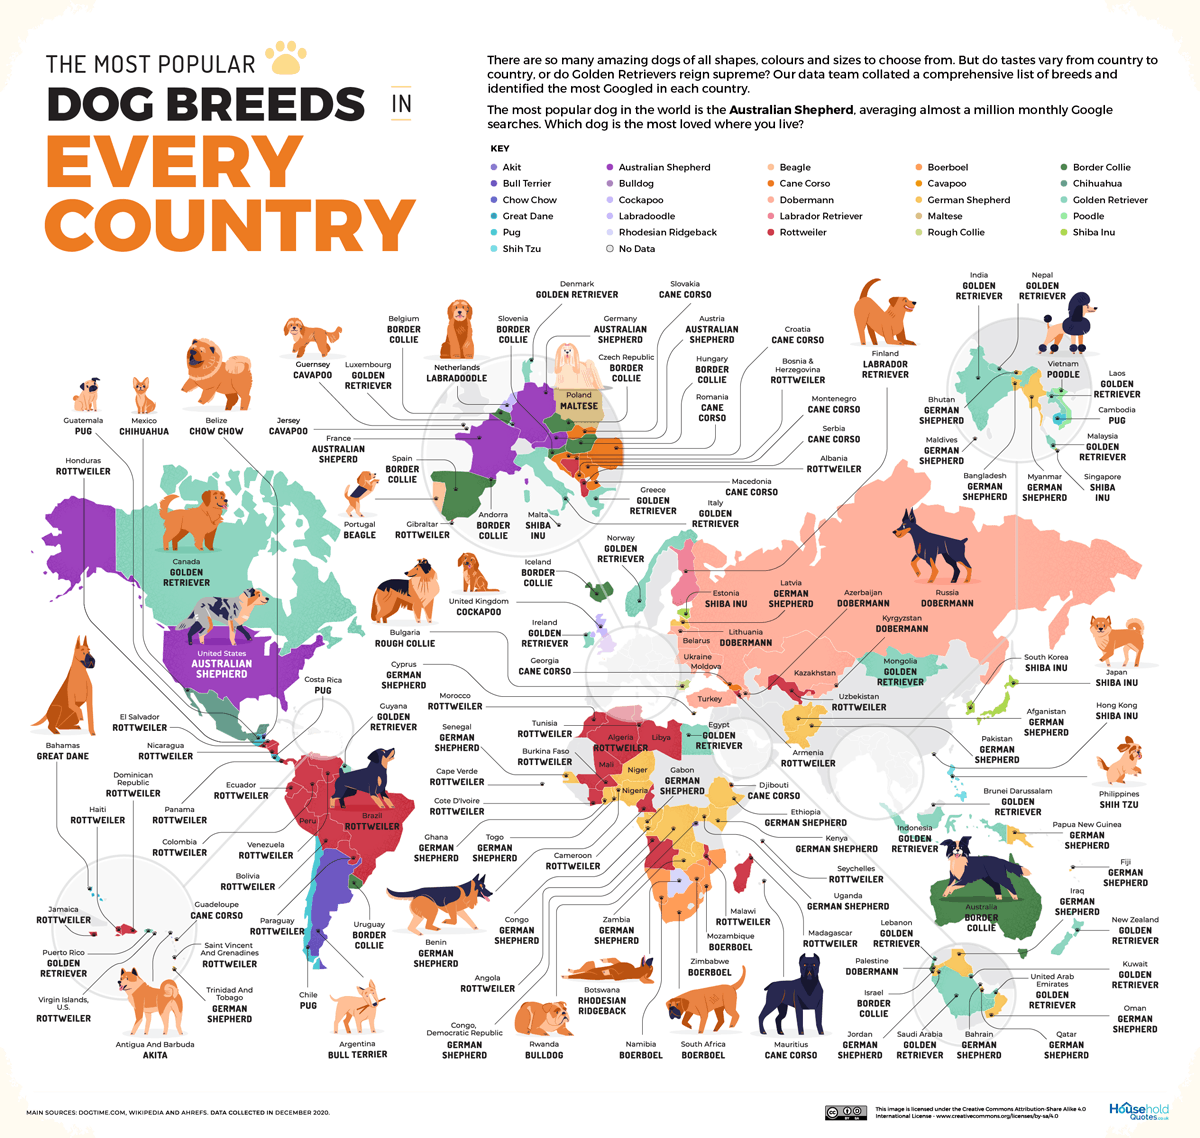 The Most Popular Dog Breed in Every Country [MAP]